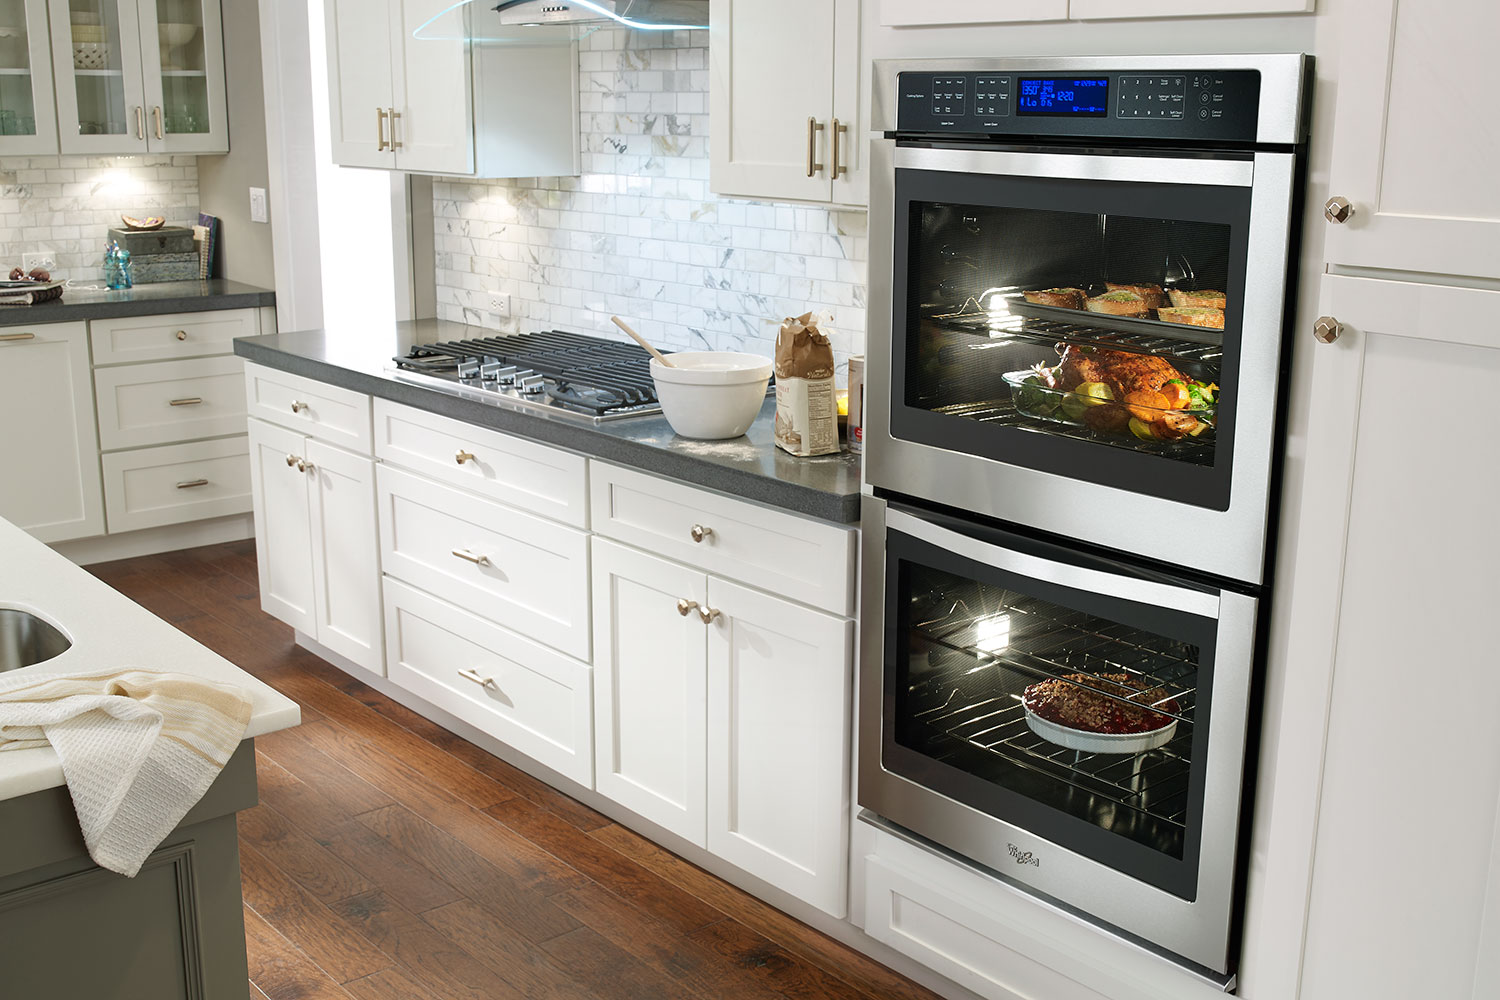 Whirlpool Acquires Yummly To Make A Smarter Kitchen